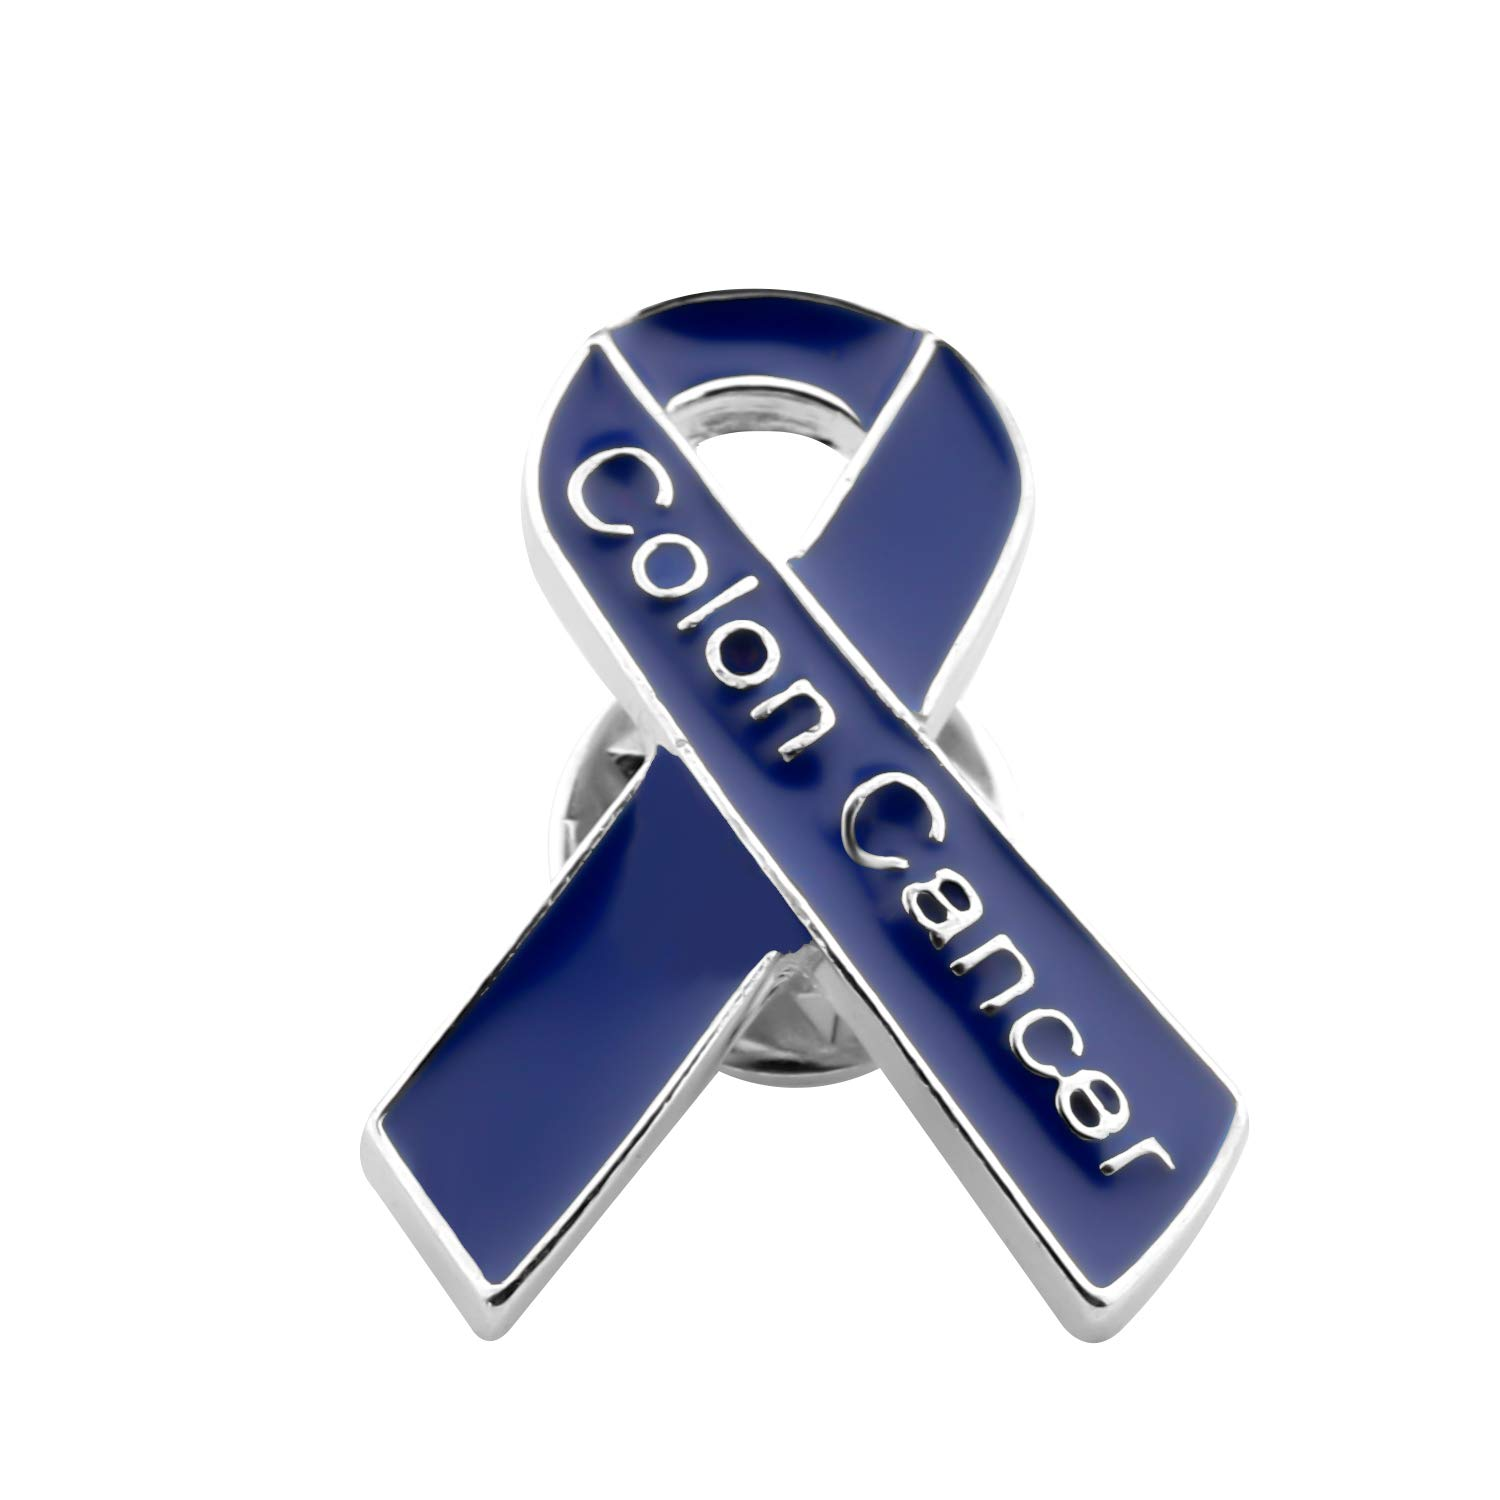 Buy Cenwa Colon Cancer Awareness Jewelry Cancer Awareness Ribbon Enamel Pin Colon Cancer Survivor Gift Colon Cancer Ribbon Bp At Amazon In